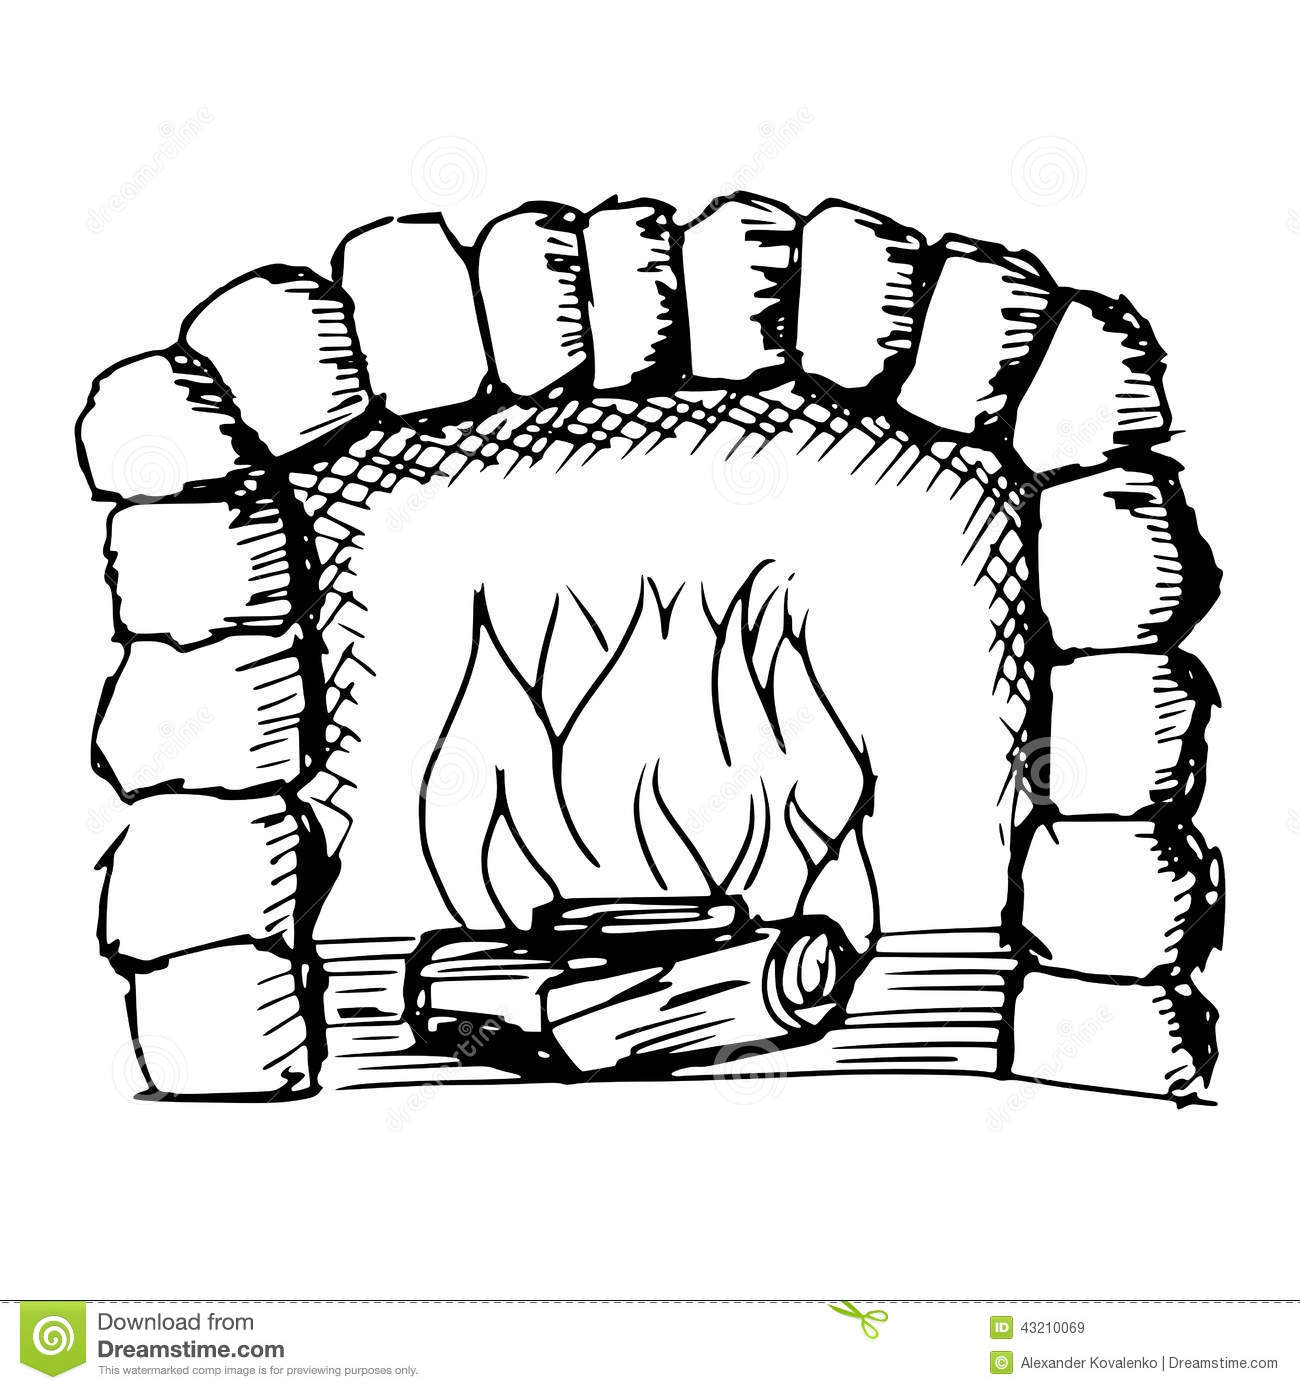 Sketch, doodle, hand drawn illustration of fireplace.